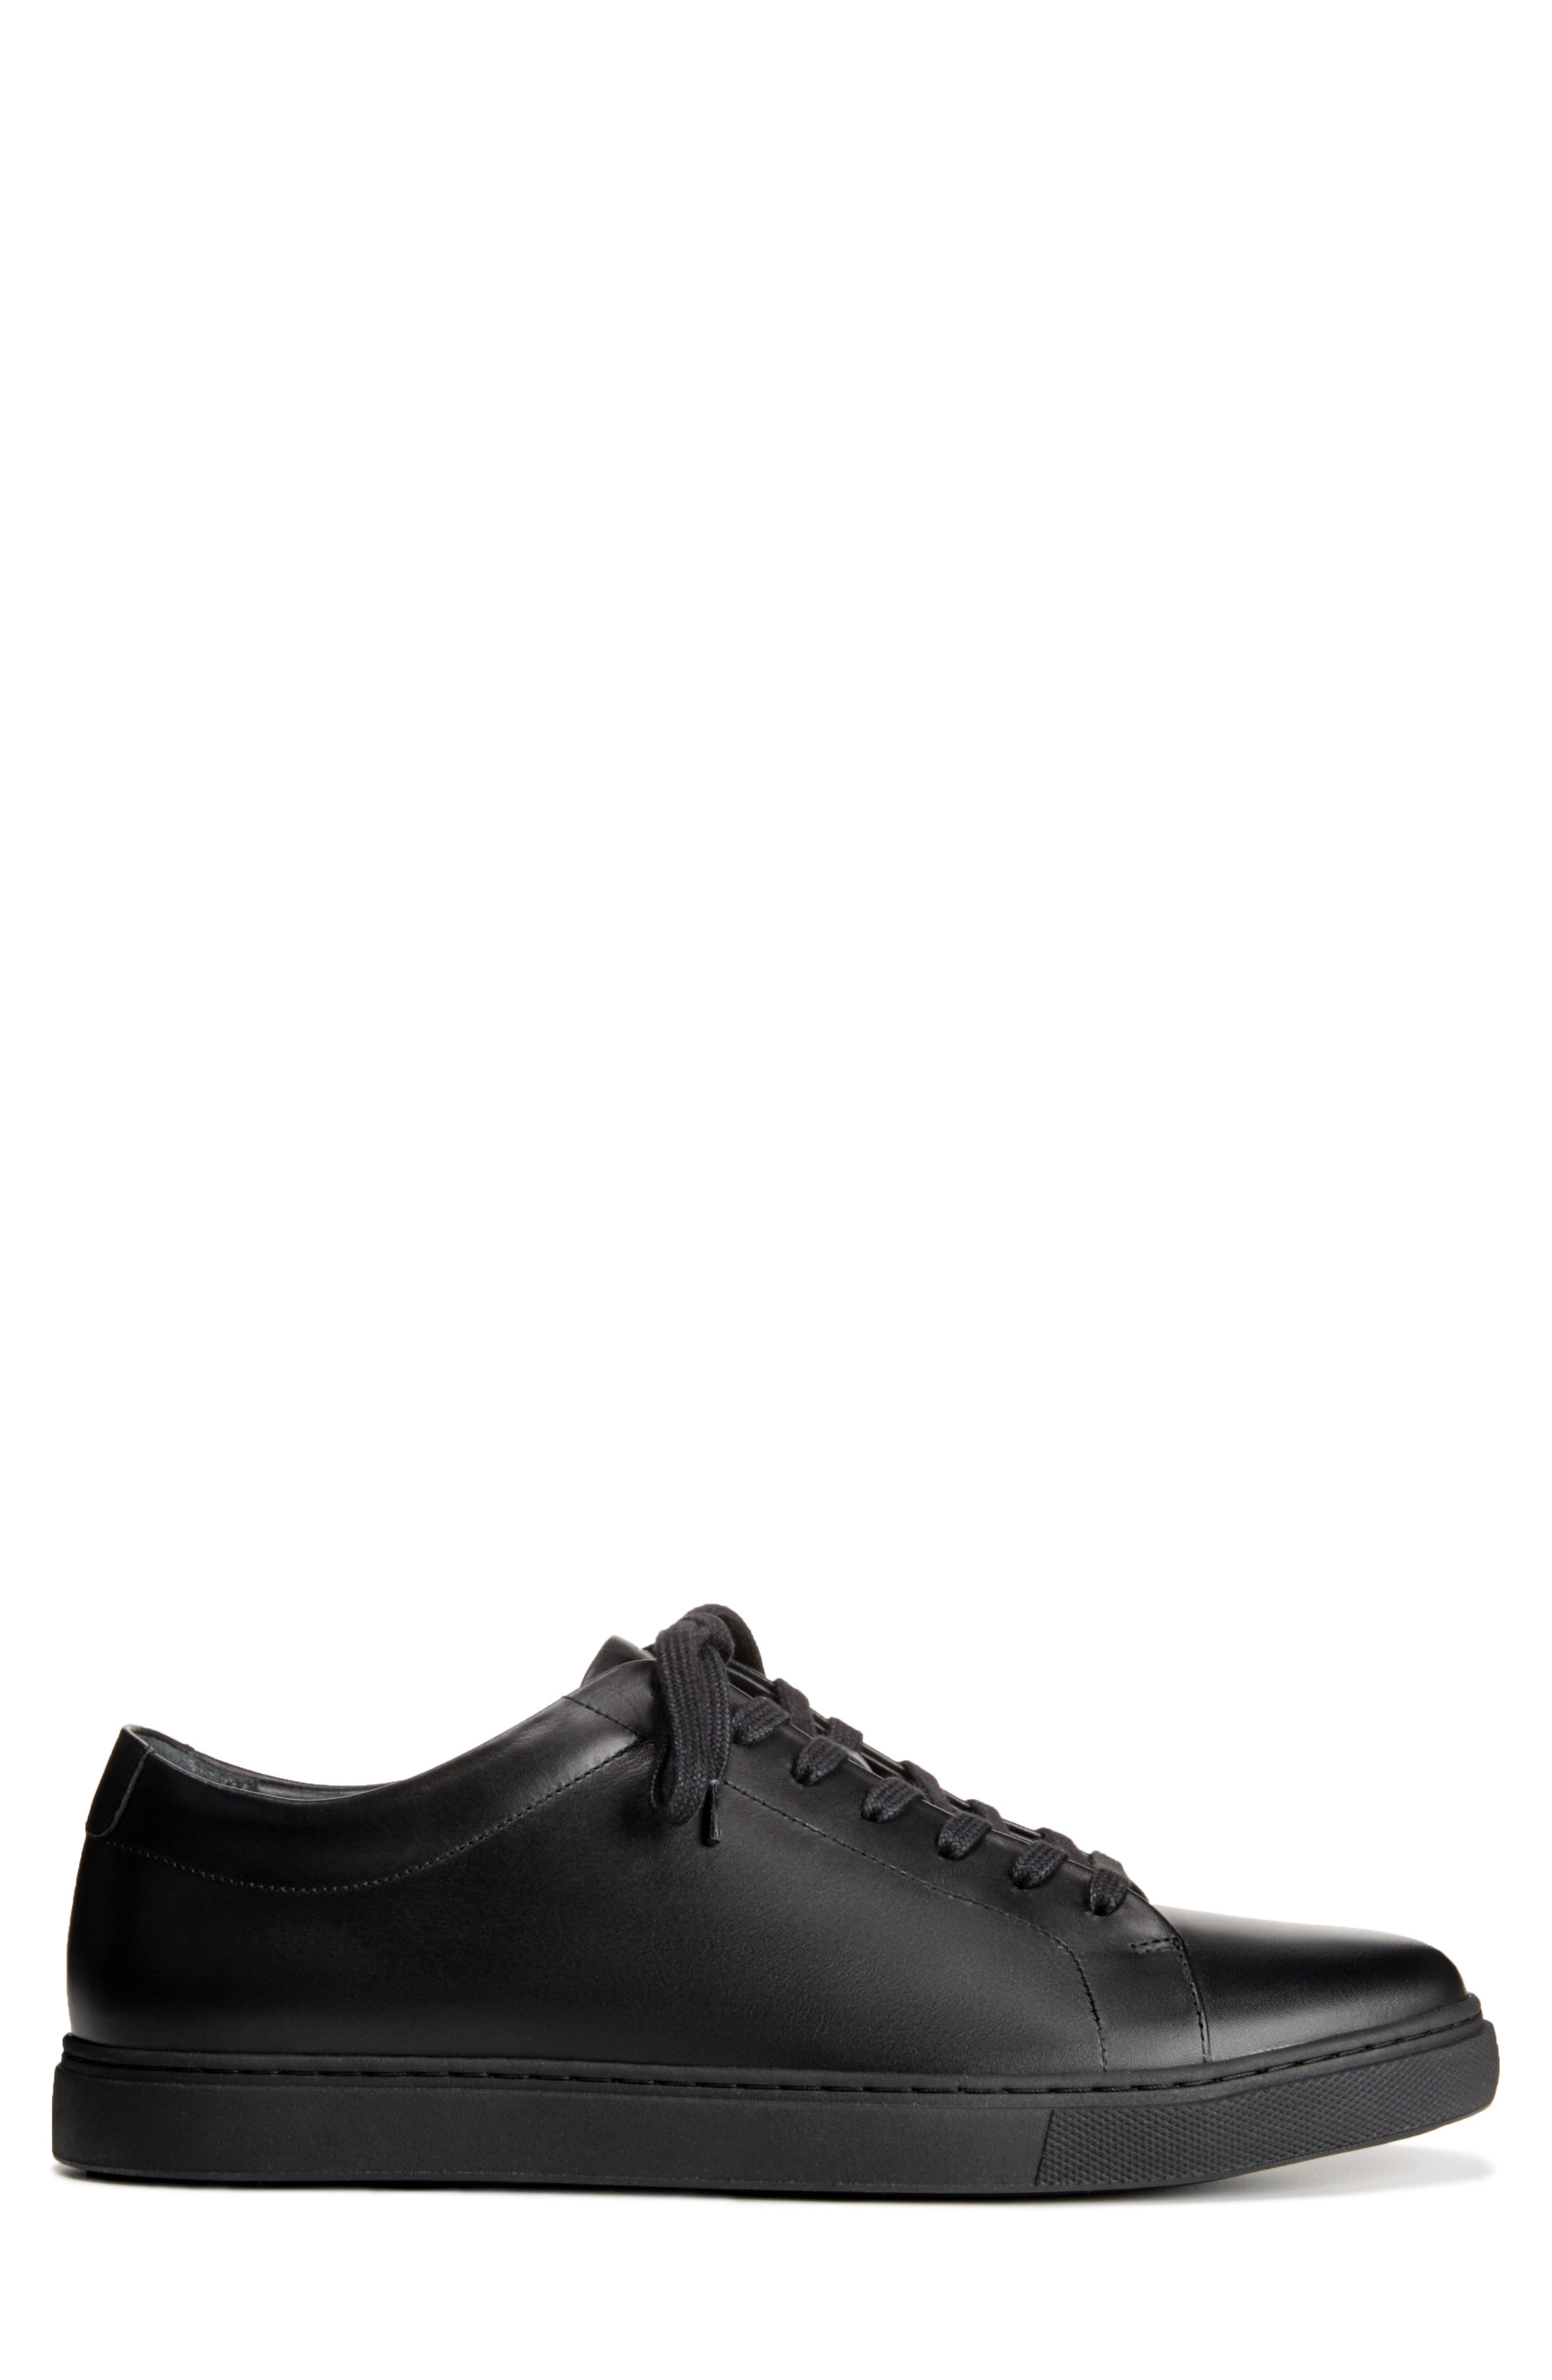 Canal Court Sneaker,                             Alternate thumbnail 3, color,                             BLACK LEATHER